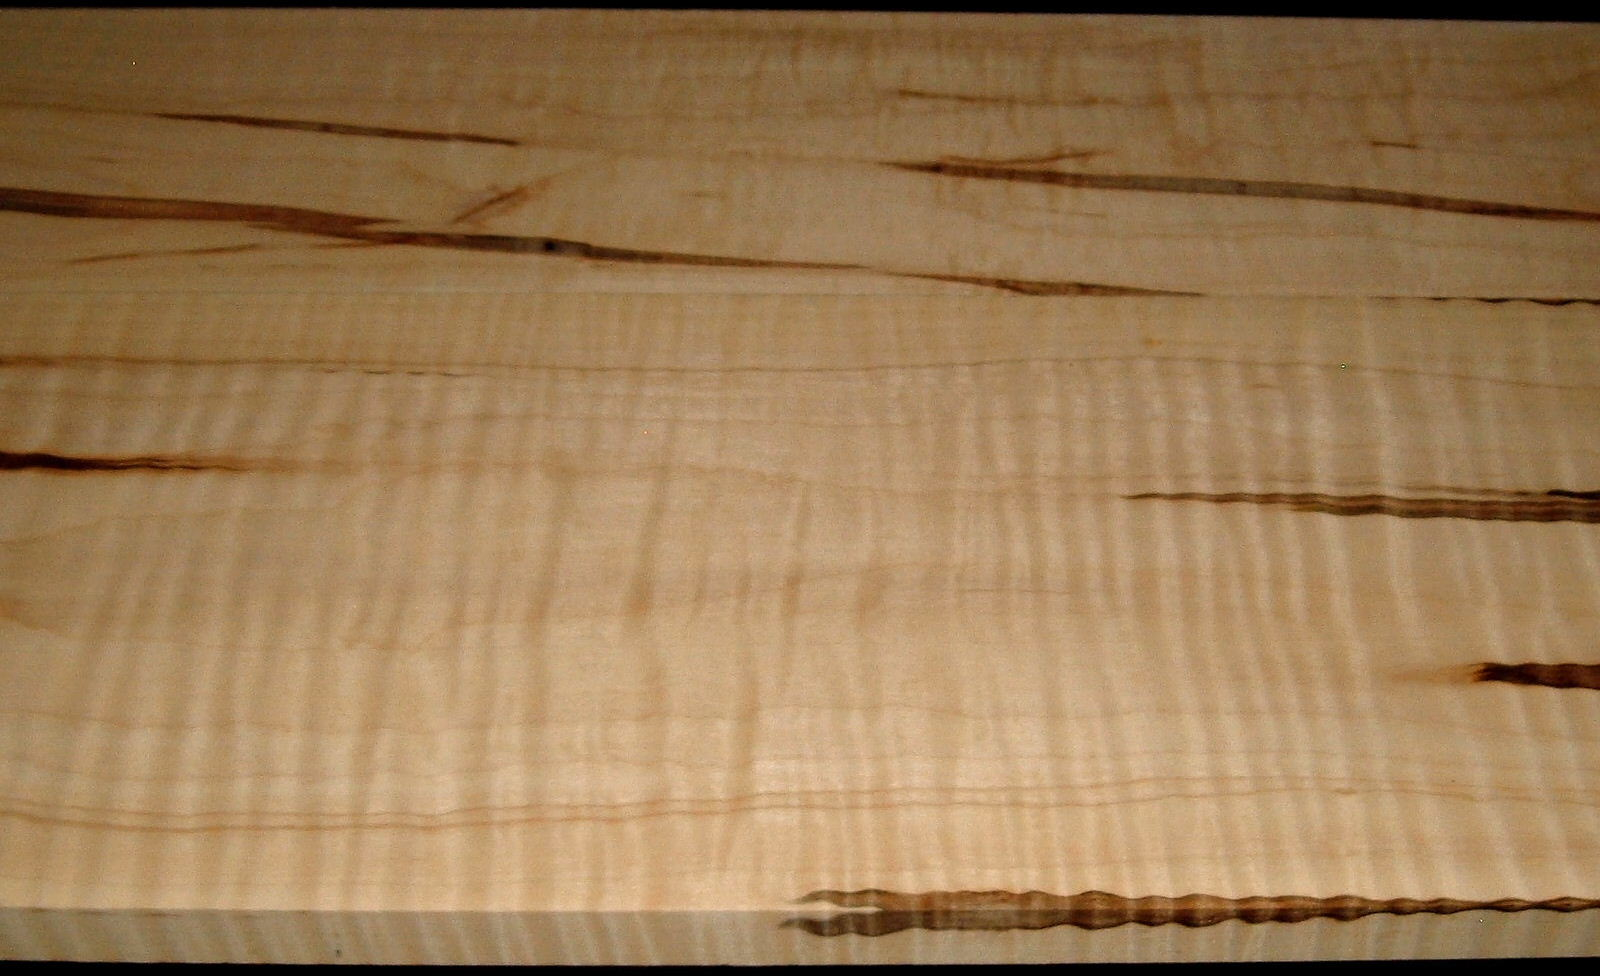 AM2002-41, 2 BD Set, 13/16x5-7/8x47, +13/16x8-1/2x47, Curly Ambrosia Maple